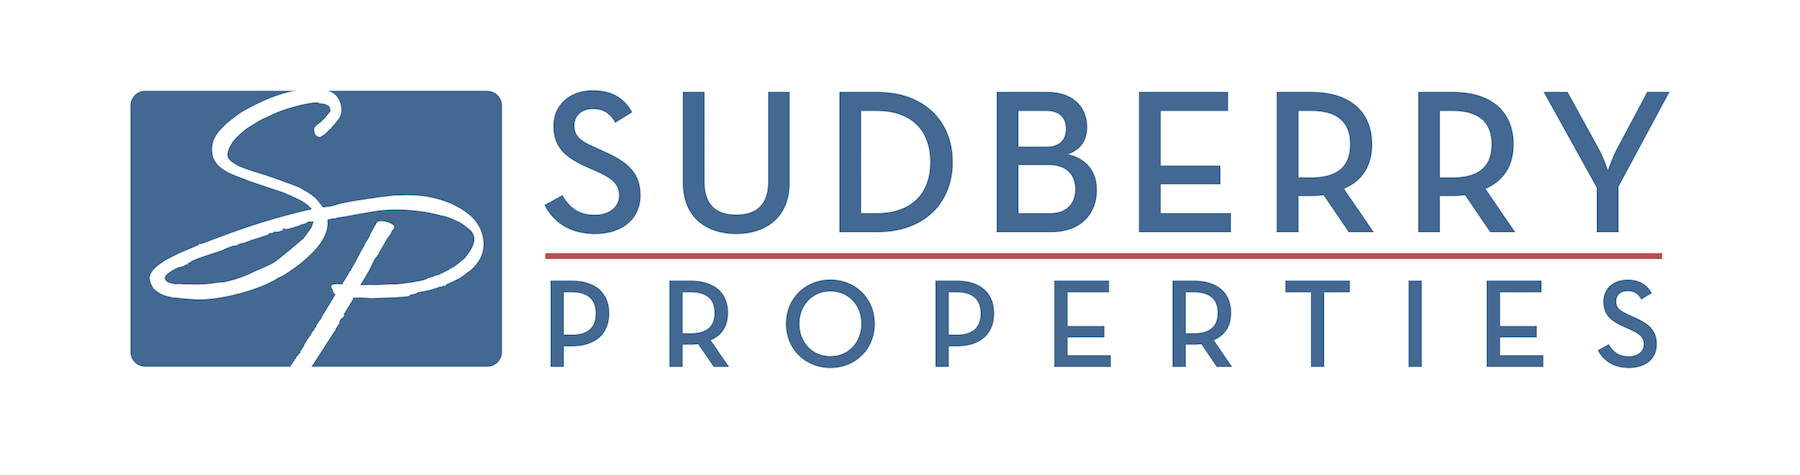 Sudberry Properties, Real Estate Developers, San Diego County, CA